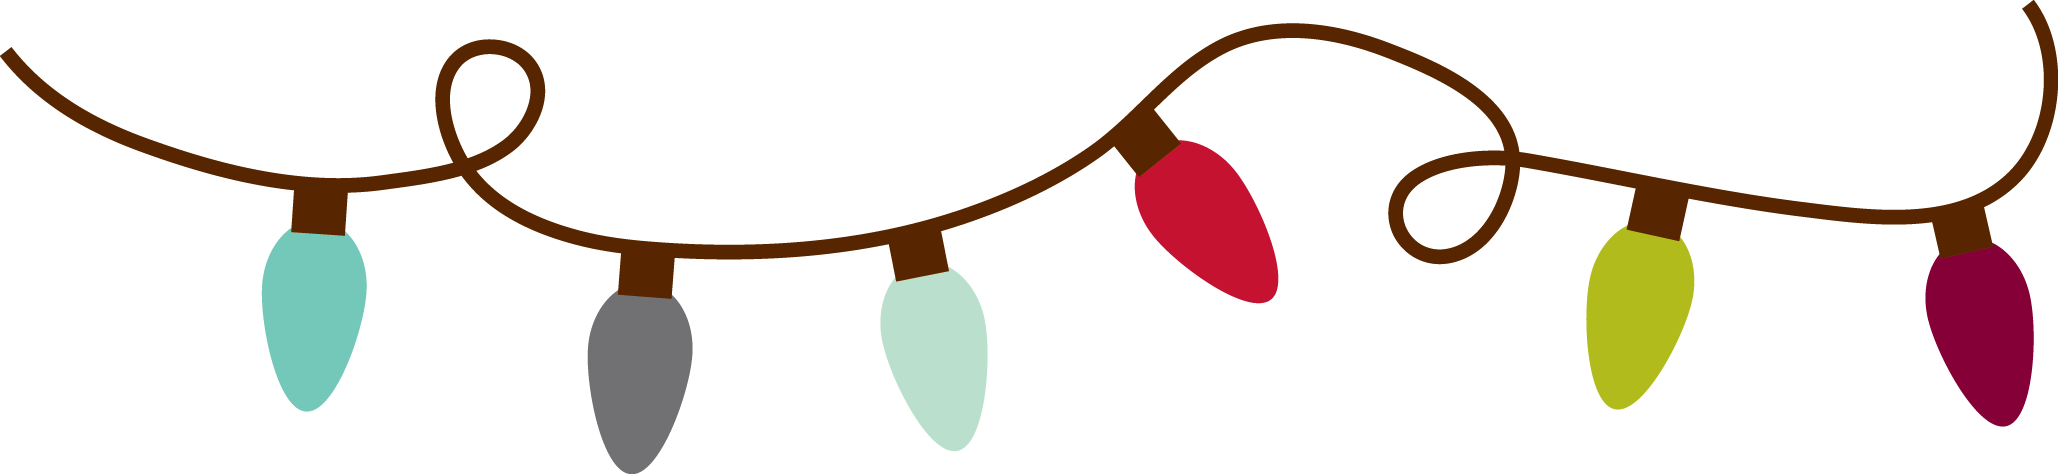 Holiday Borders Clip Art.